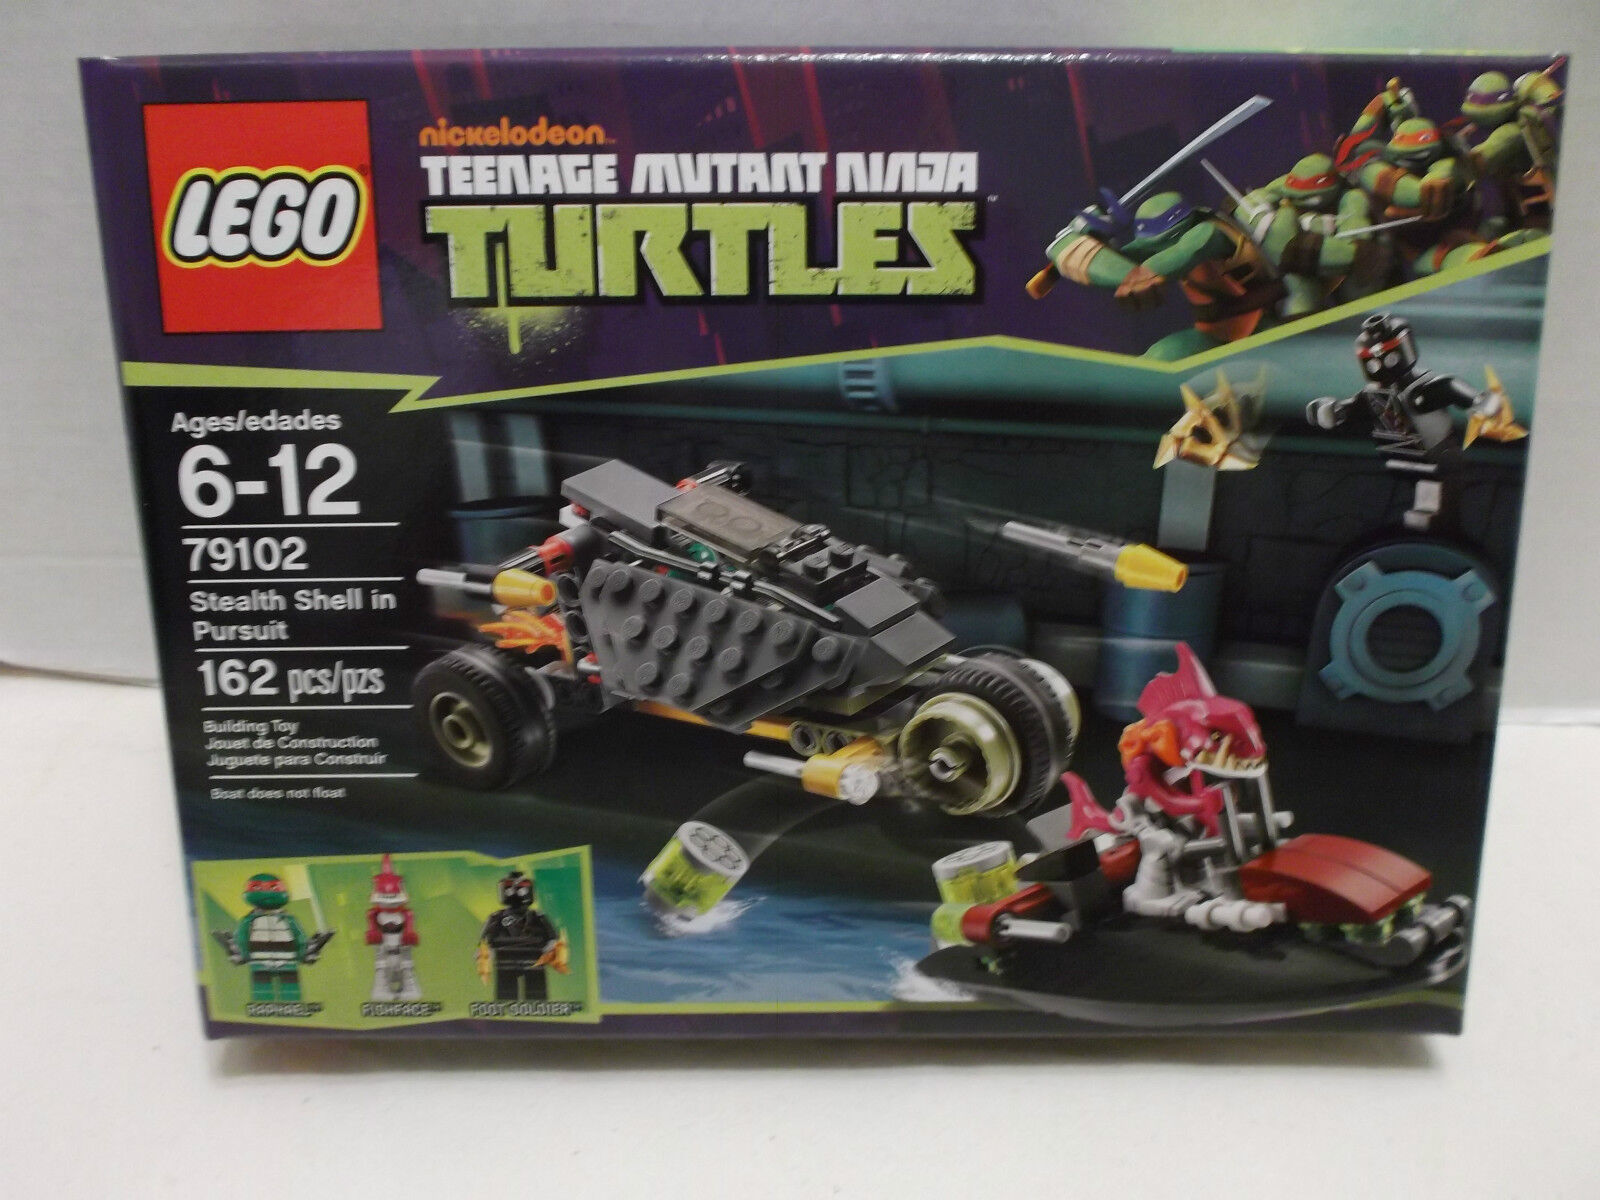 Lego Teenage Mutant Ninja Turtles Stealth Shell In Pursuit NIB 2013